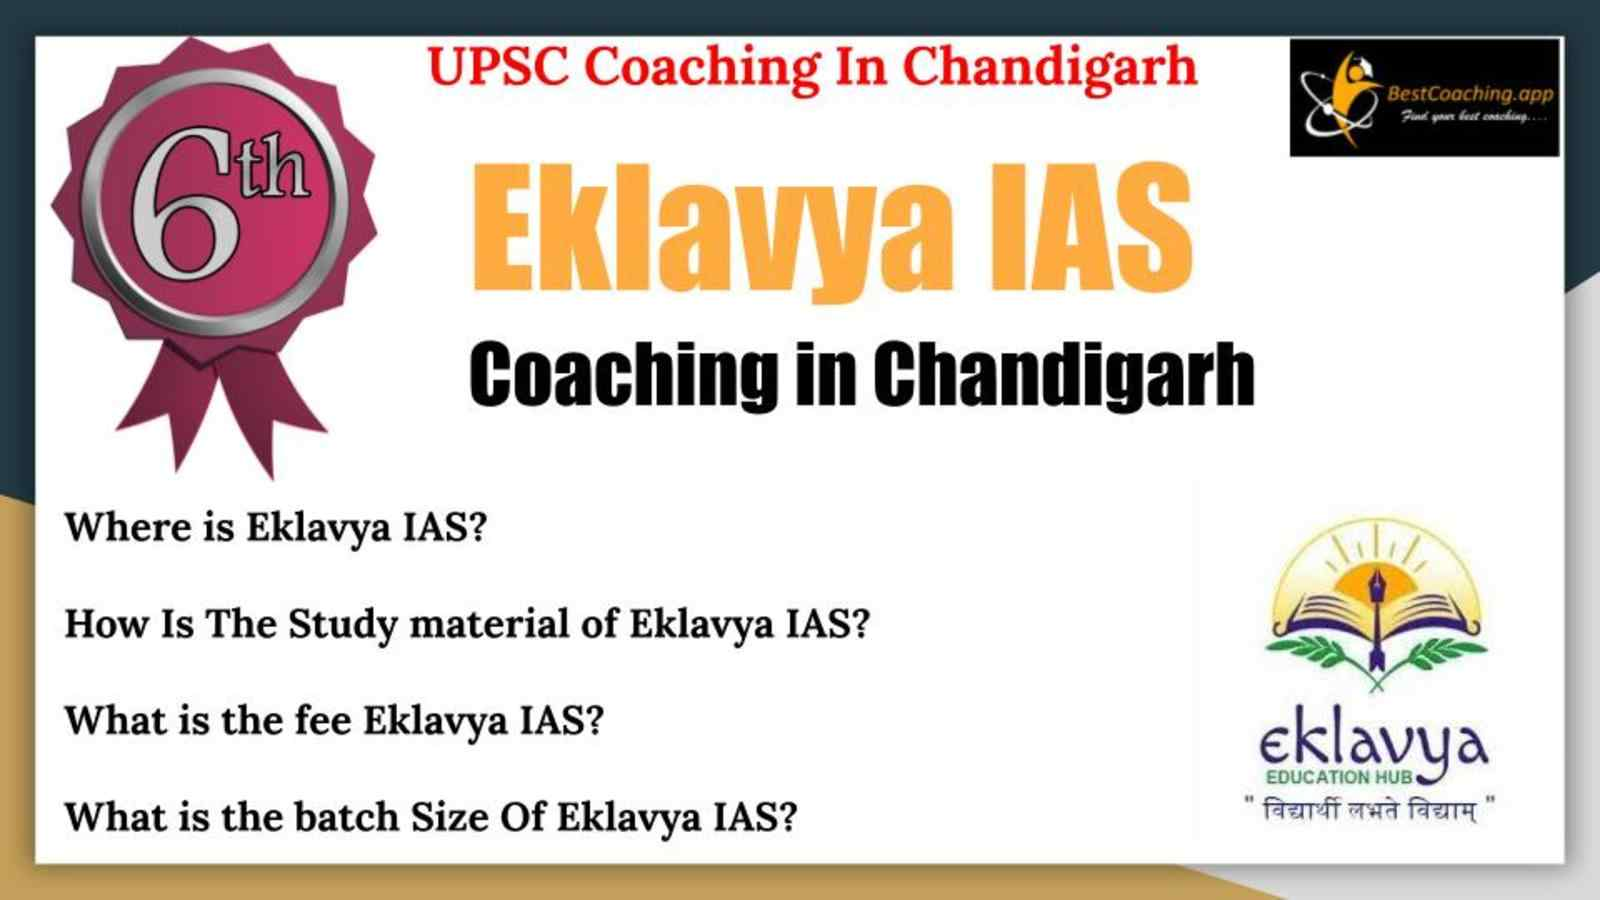 Best UPSC Coaching In Chandigarh